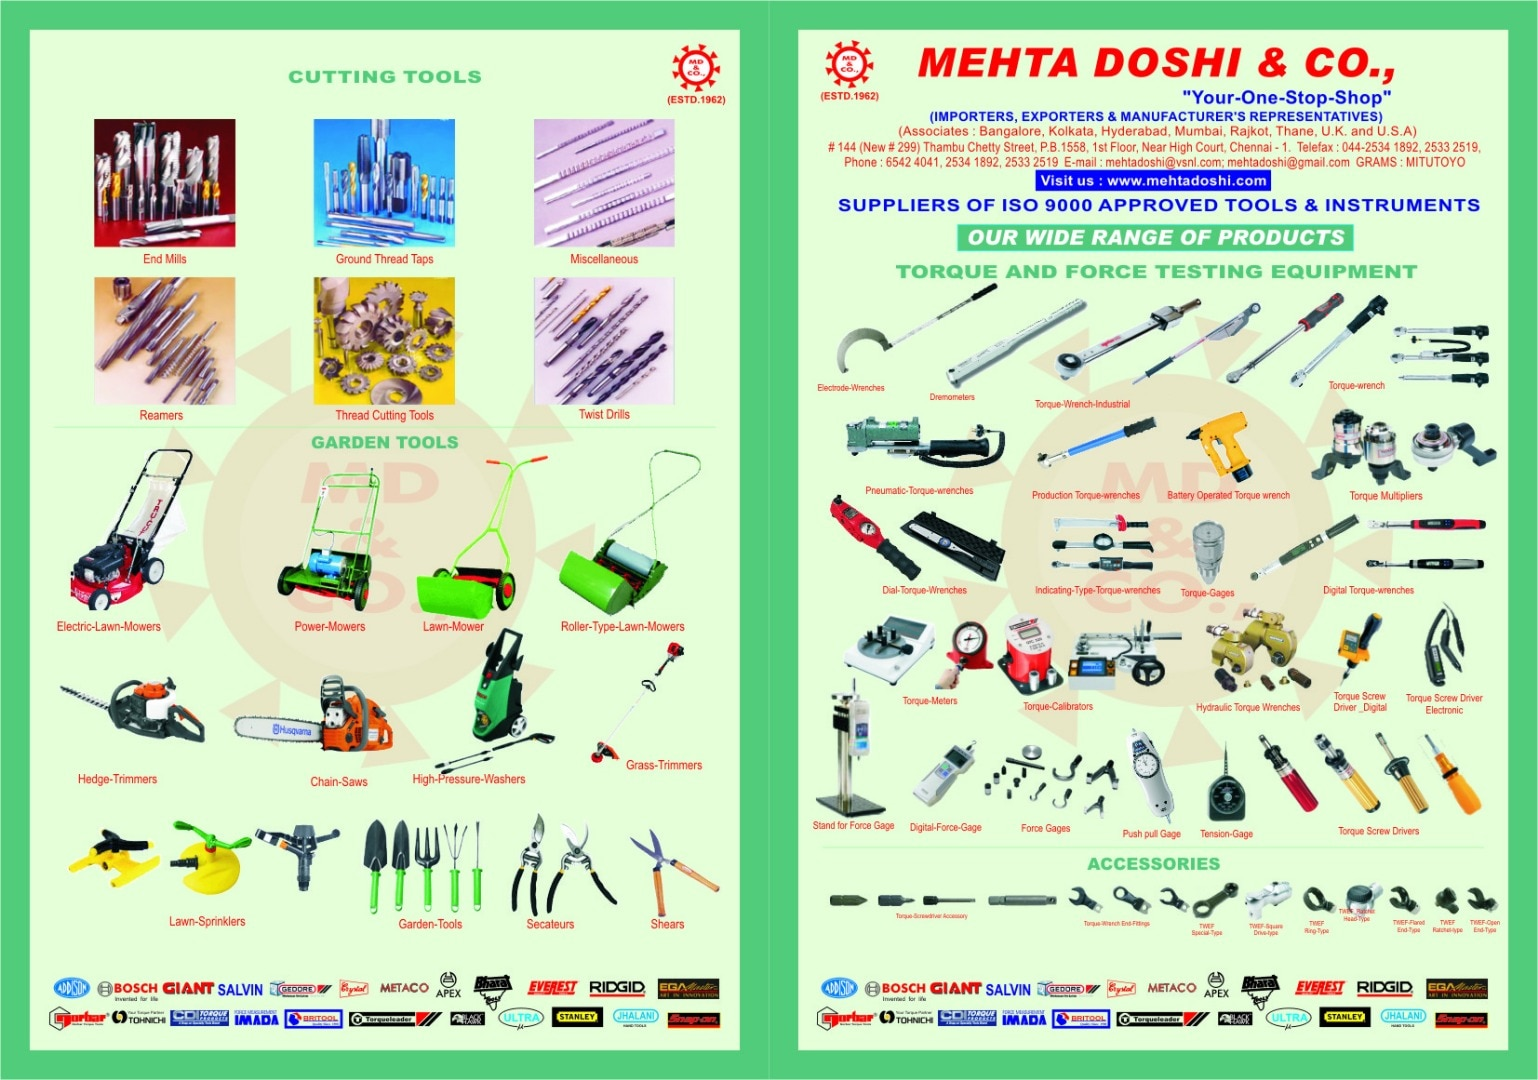 MEHTA DOSHI & CO Contact us: 044 25332519